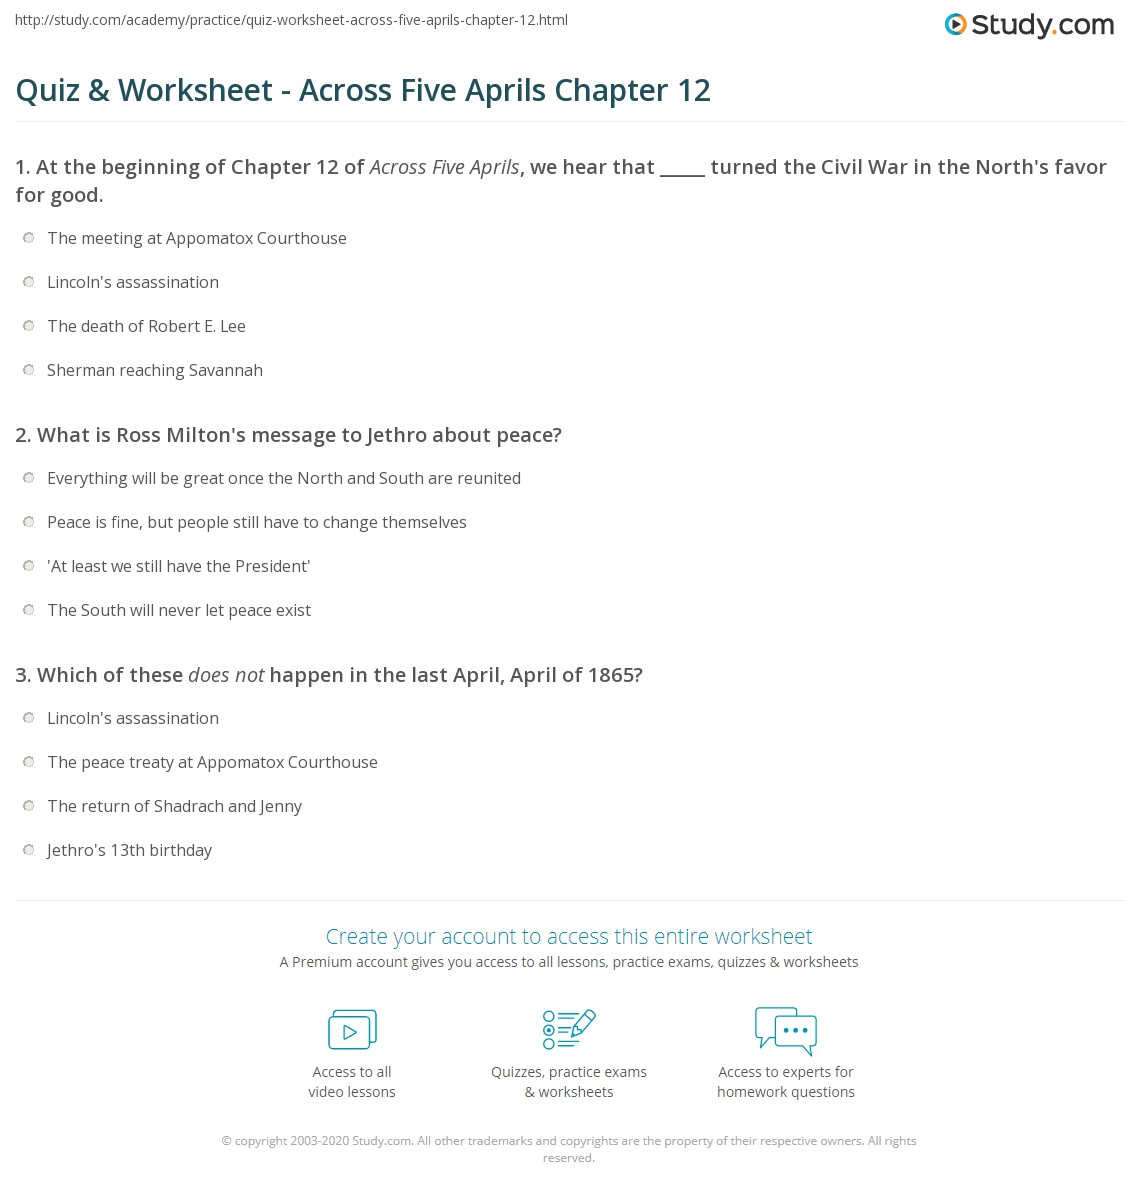 across five aprils chapter analysis Study guide for across five aprils summary by irene hunt analysis book notes free booknotes online/download cliff notes™, cliffs notes™ chapter 10 summary.